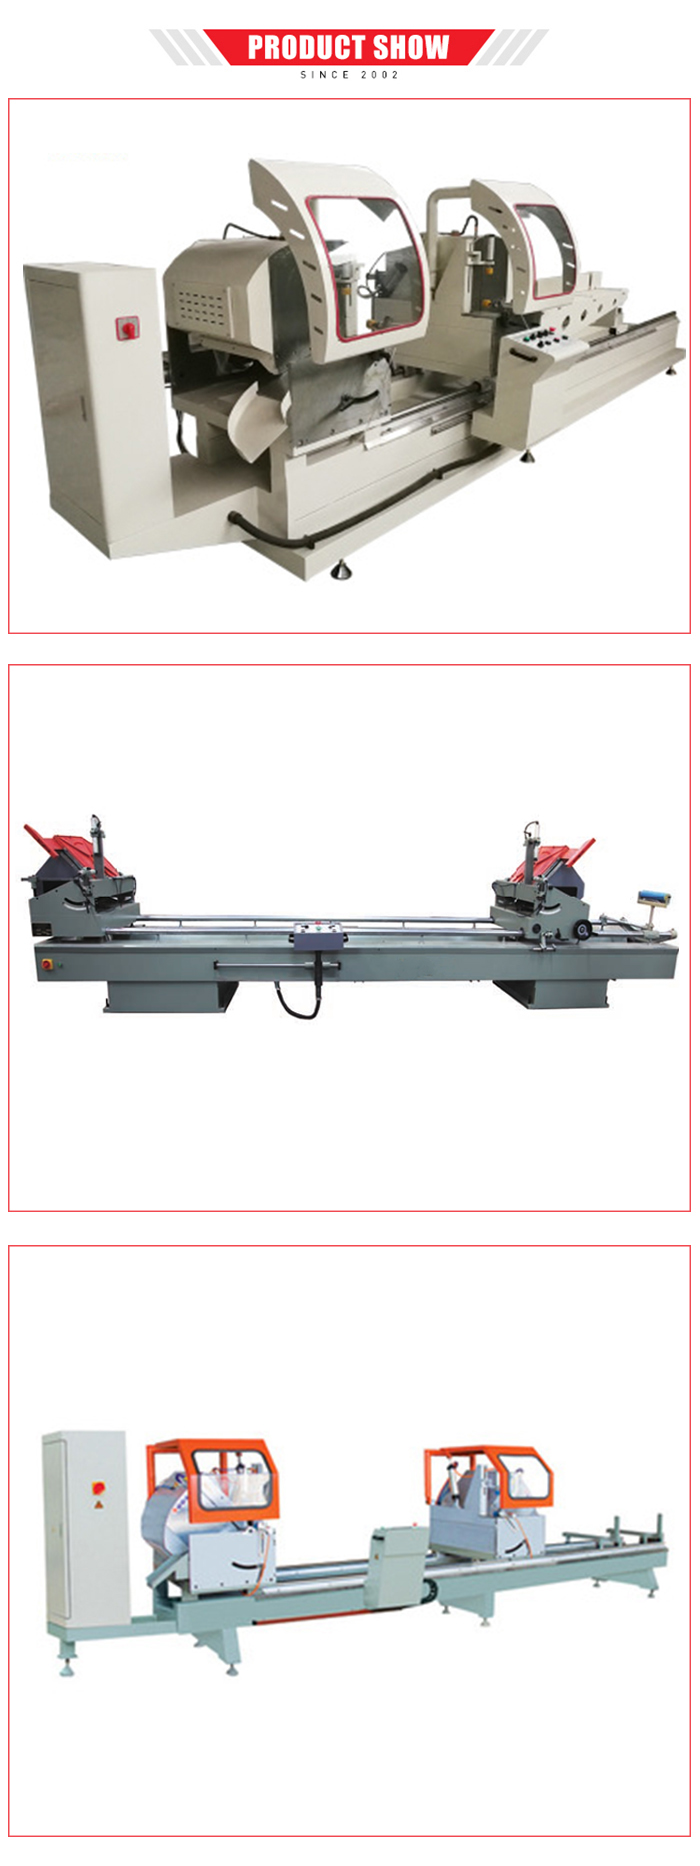 Venster machine snijden saw pvc profielen aluminium raam en deur machine